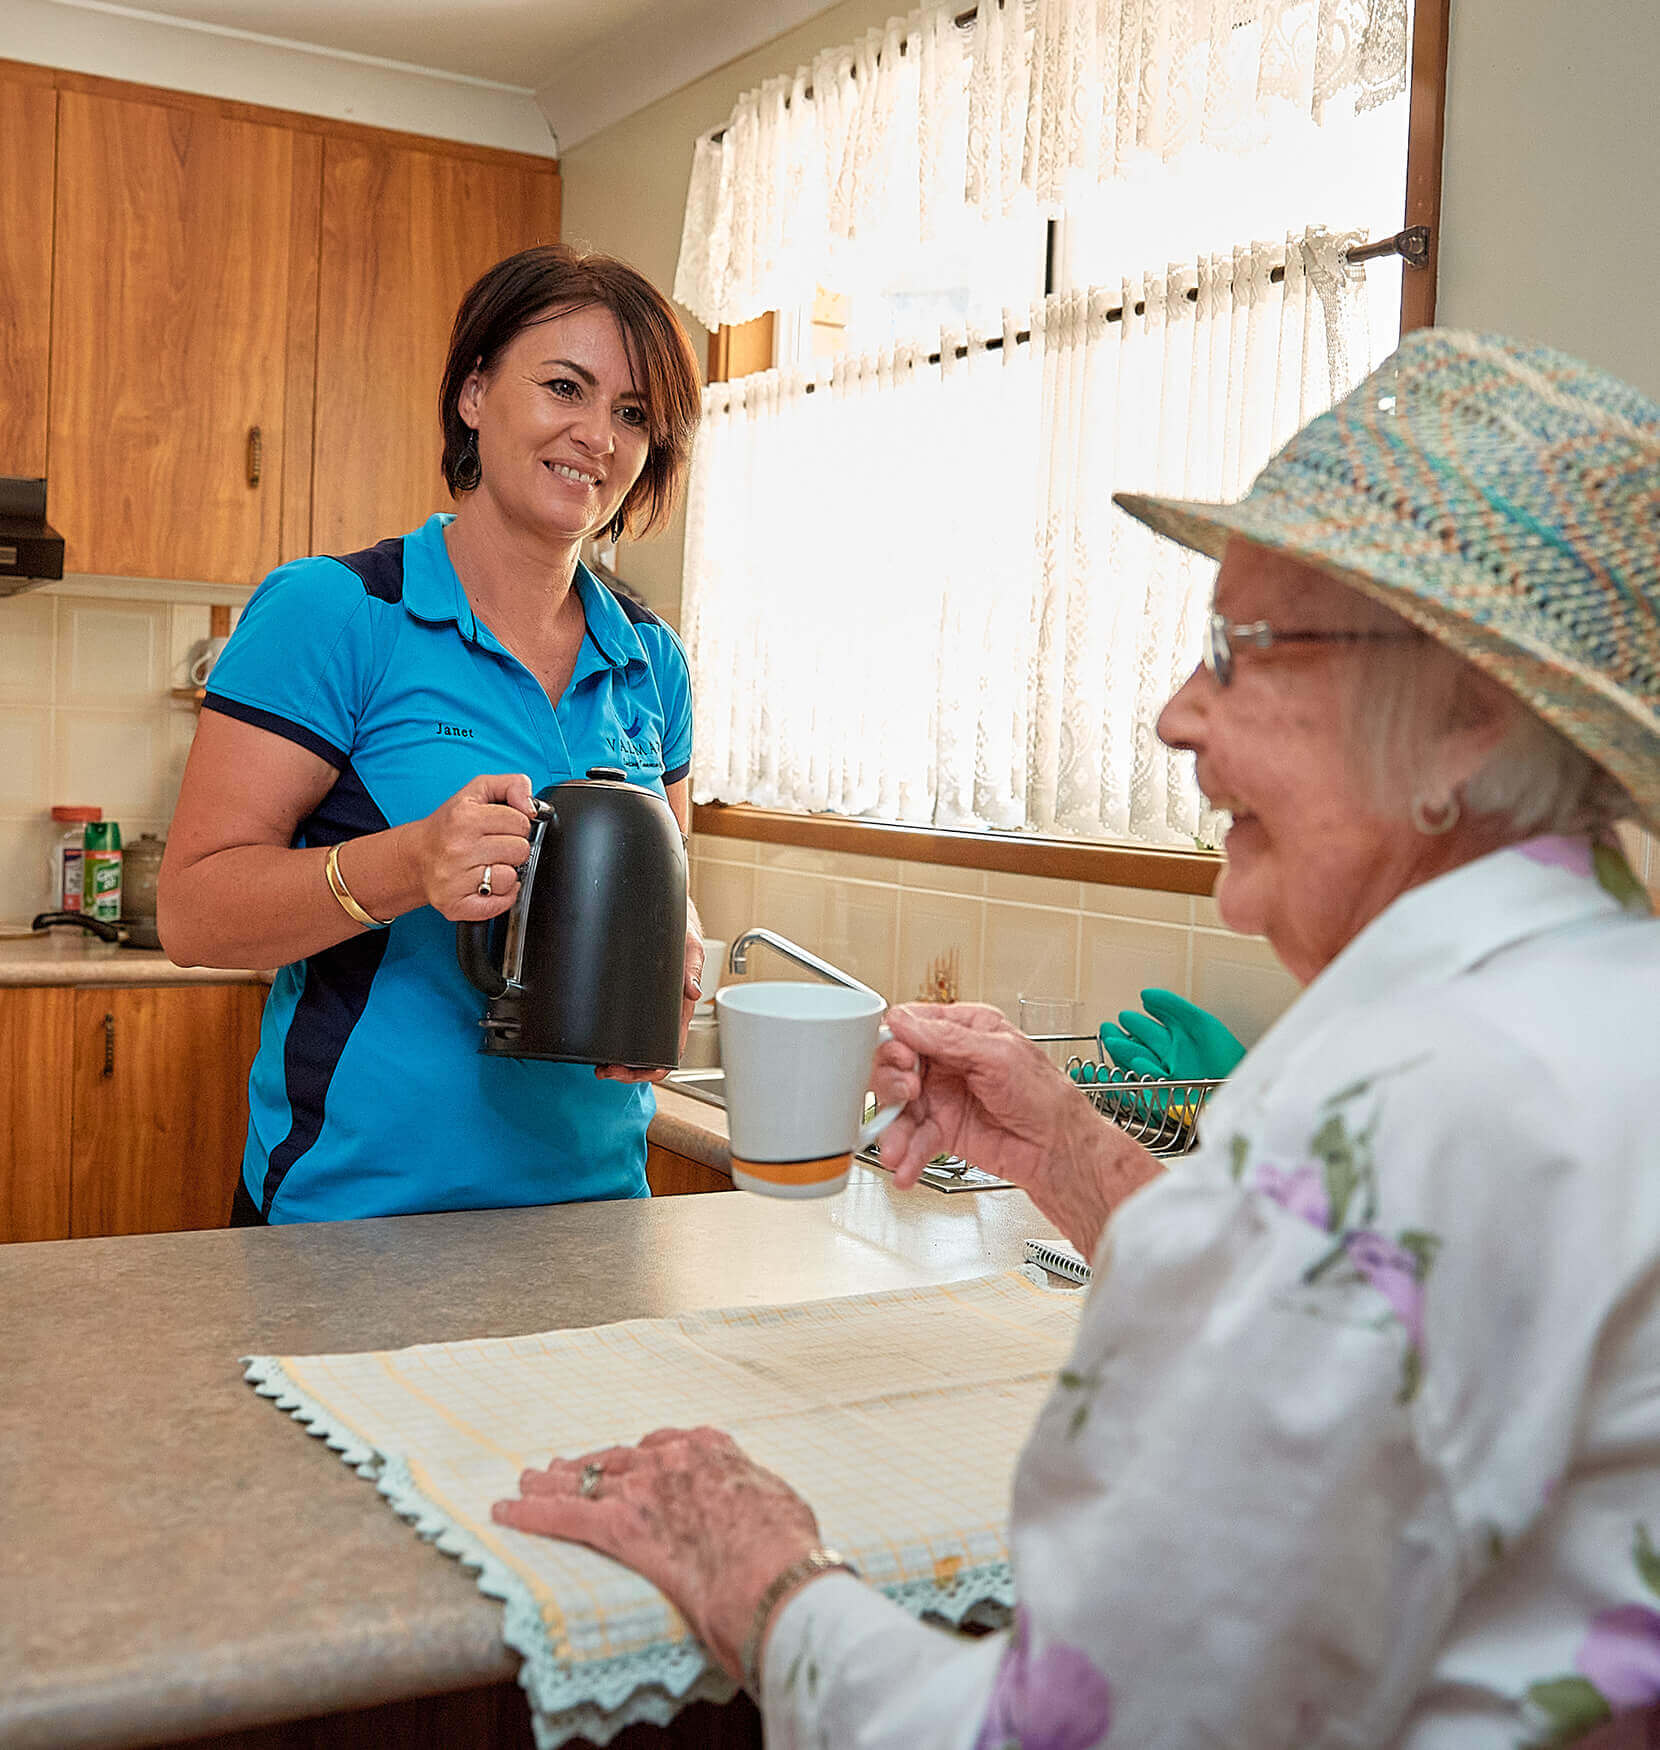 A woman in a blue Valmar Support Services uniform serving a kettle to an elderly woman who is sitting at a kitchen counter and holding out a white tea cup in her right hand.